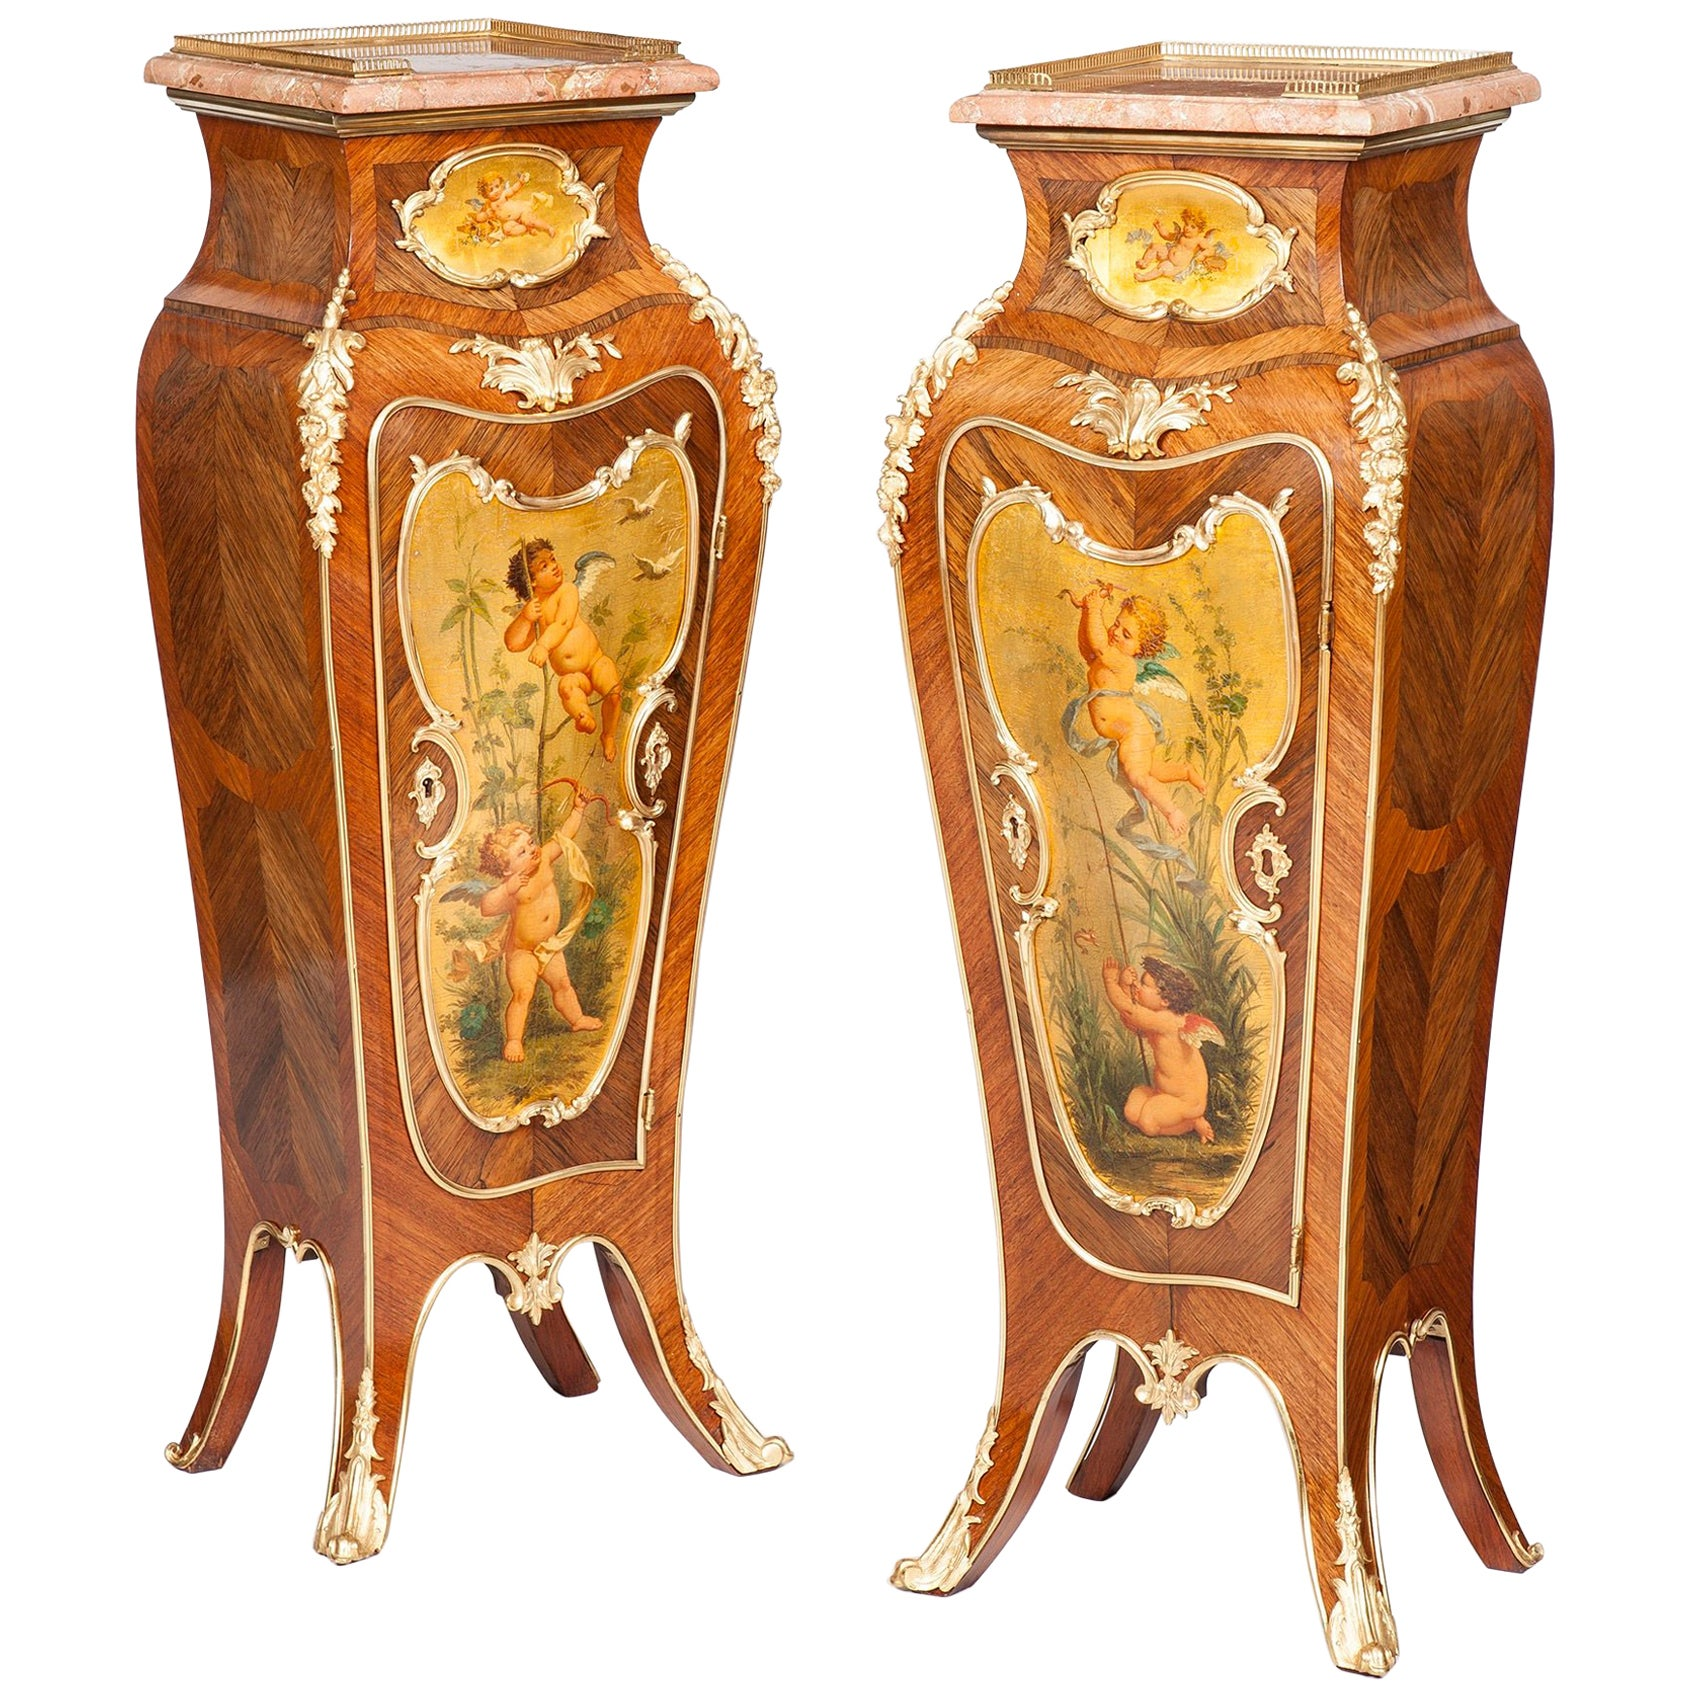 Pair of French 19th Century Gilt Painted Wooden Pedestals